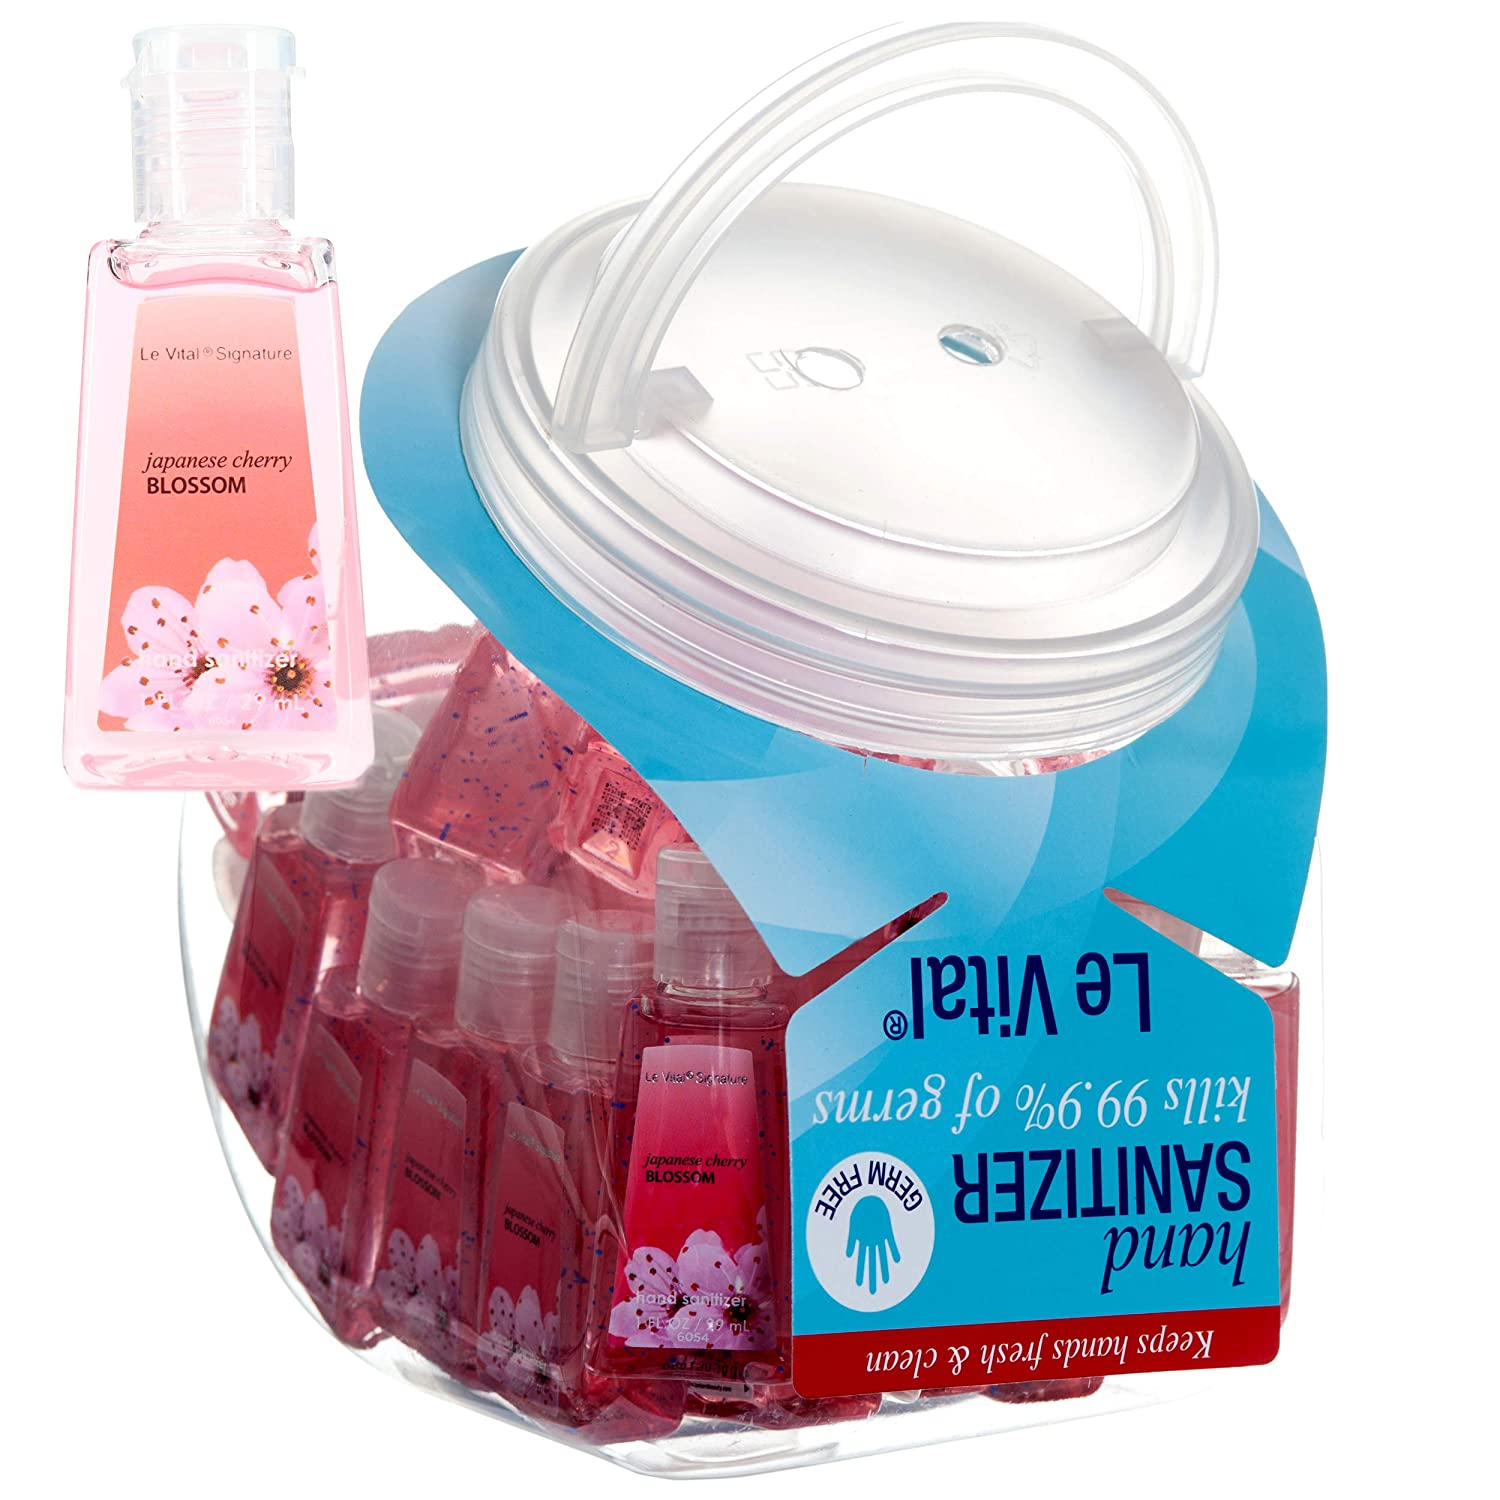 5 Mini Individual Hand Sanitizer Bottles. Perfect Size for Baby Shower Favors, Wedding Receptions Gifts, Baptism Goody Bags.1 floz Each. (Try Them All (5 scents, one of each)) Le Vital